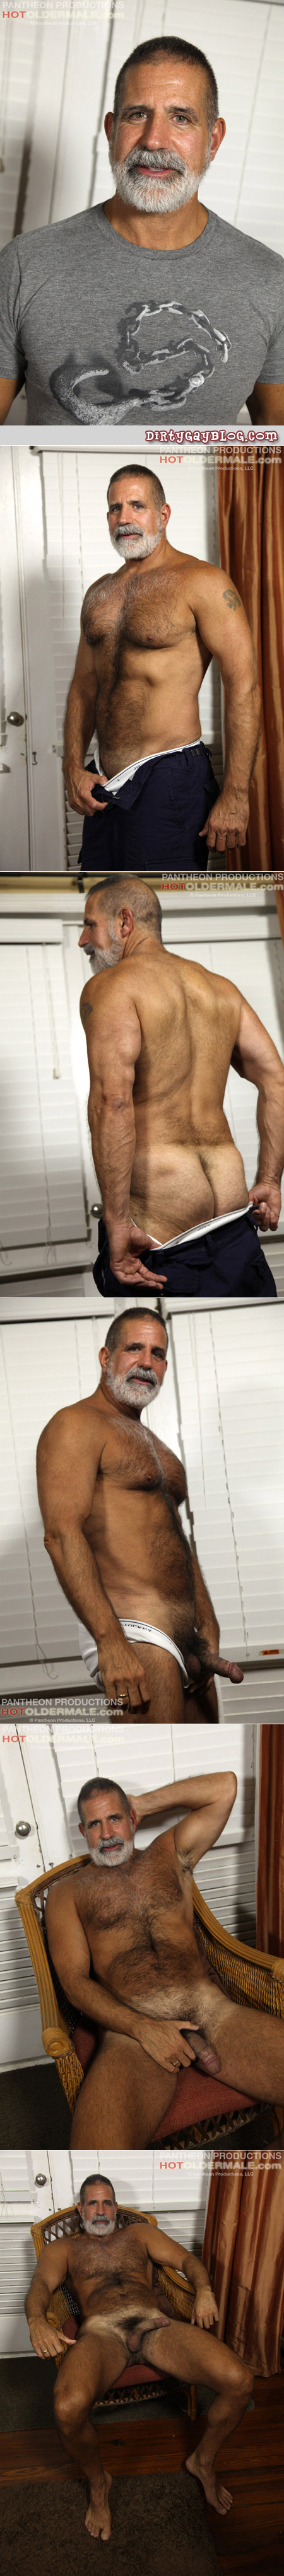 Hairy, beefy Daddy with tan lines jerks off for other guys to watch.